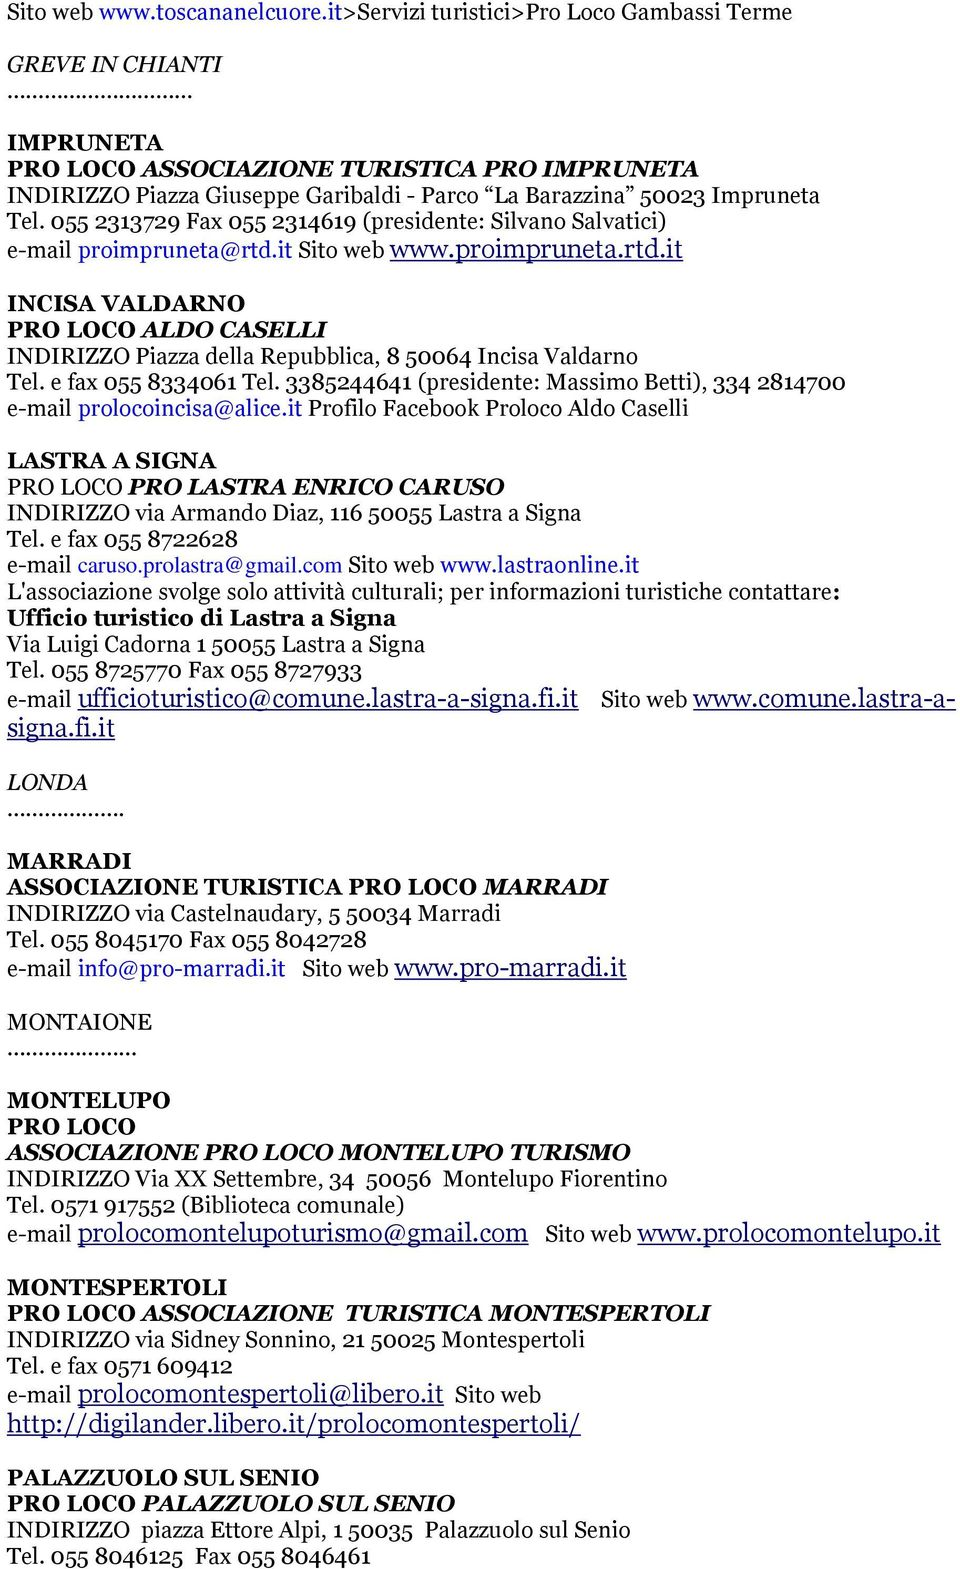 055 2313729 Fax 055 2314619 (presidente: Silvano Salvatici) e-mail proimpruneta@rtd.it Sito web www.proimpruneta.rtd.it INCISA VALDARNO PRO LOCO ALDO CASELLI INDIRIZZO Piazza della Repubblica, 8 50064 Incisa Valdarno Tel.